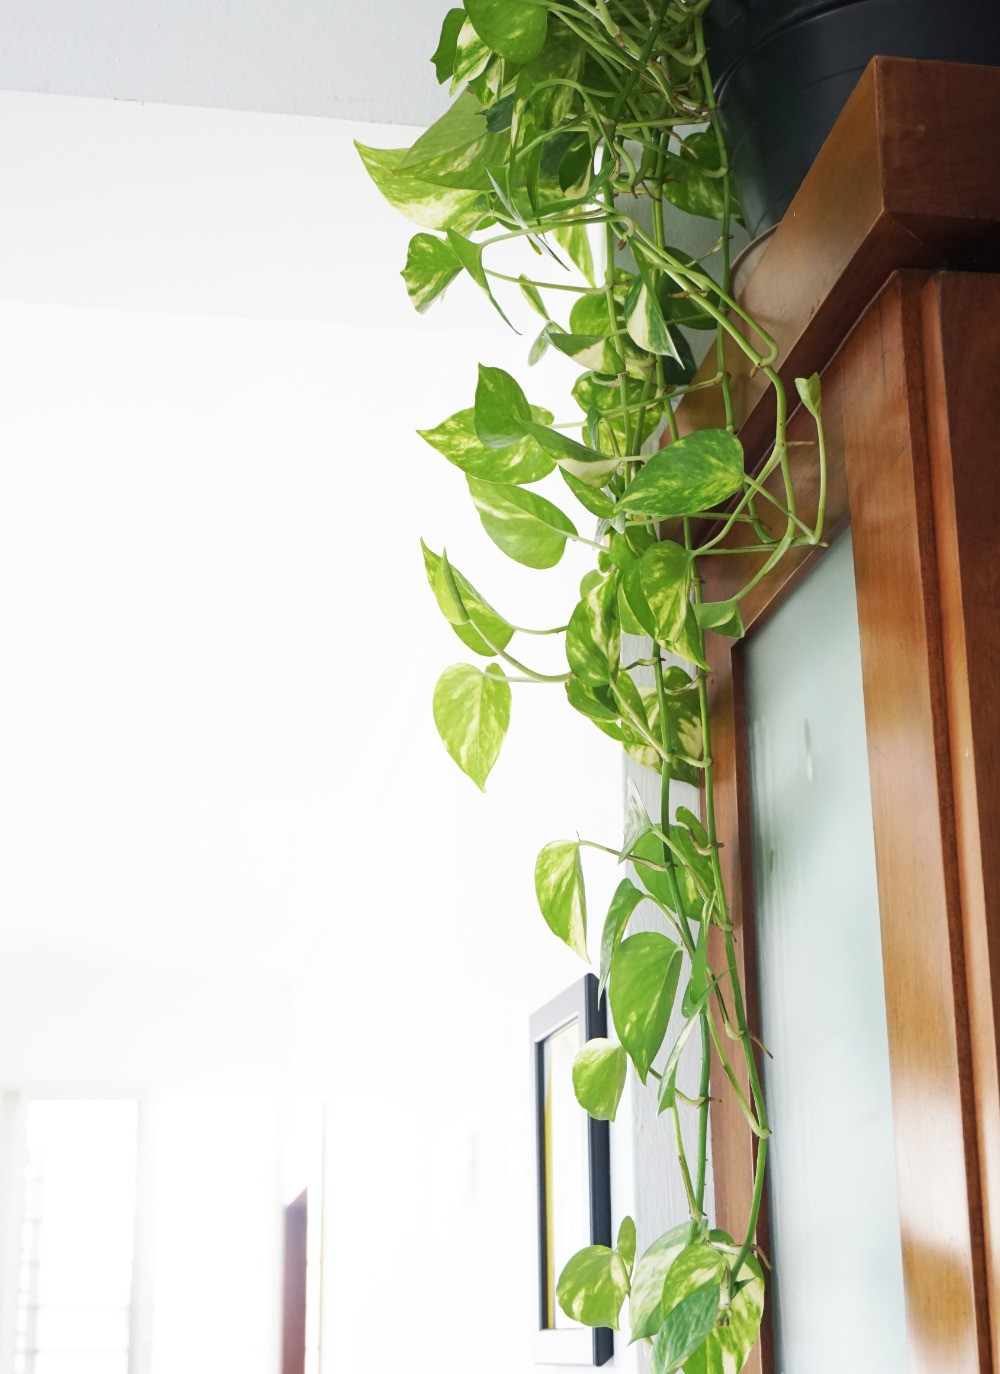 Golden Pothos o Progreso